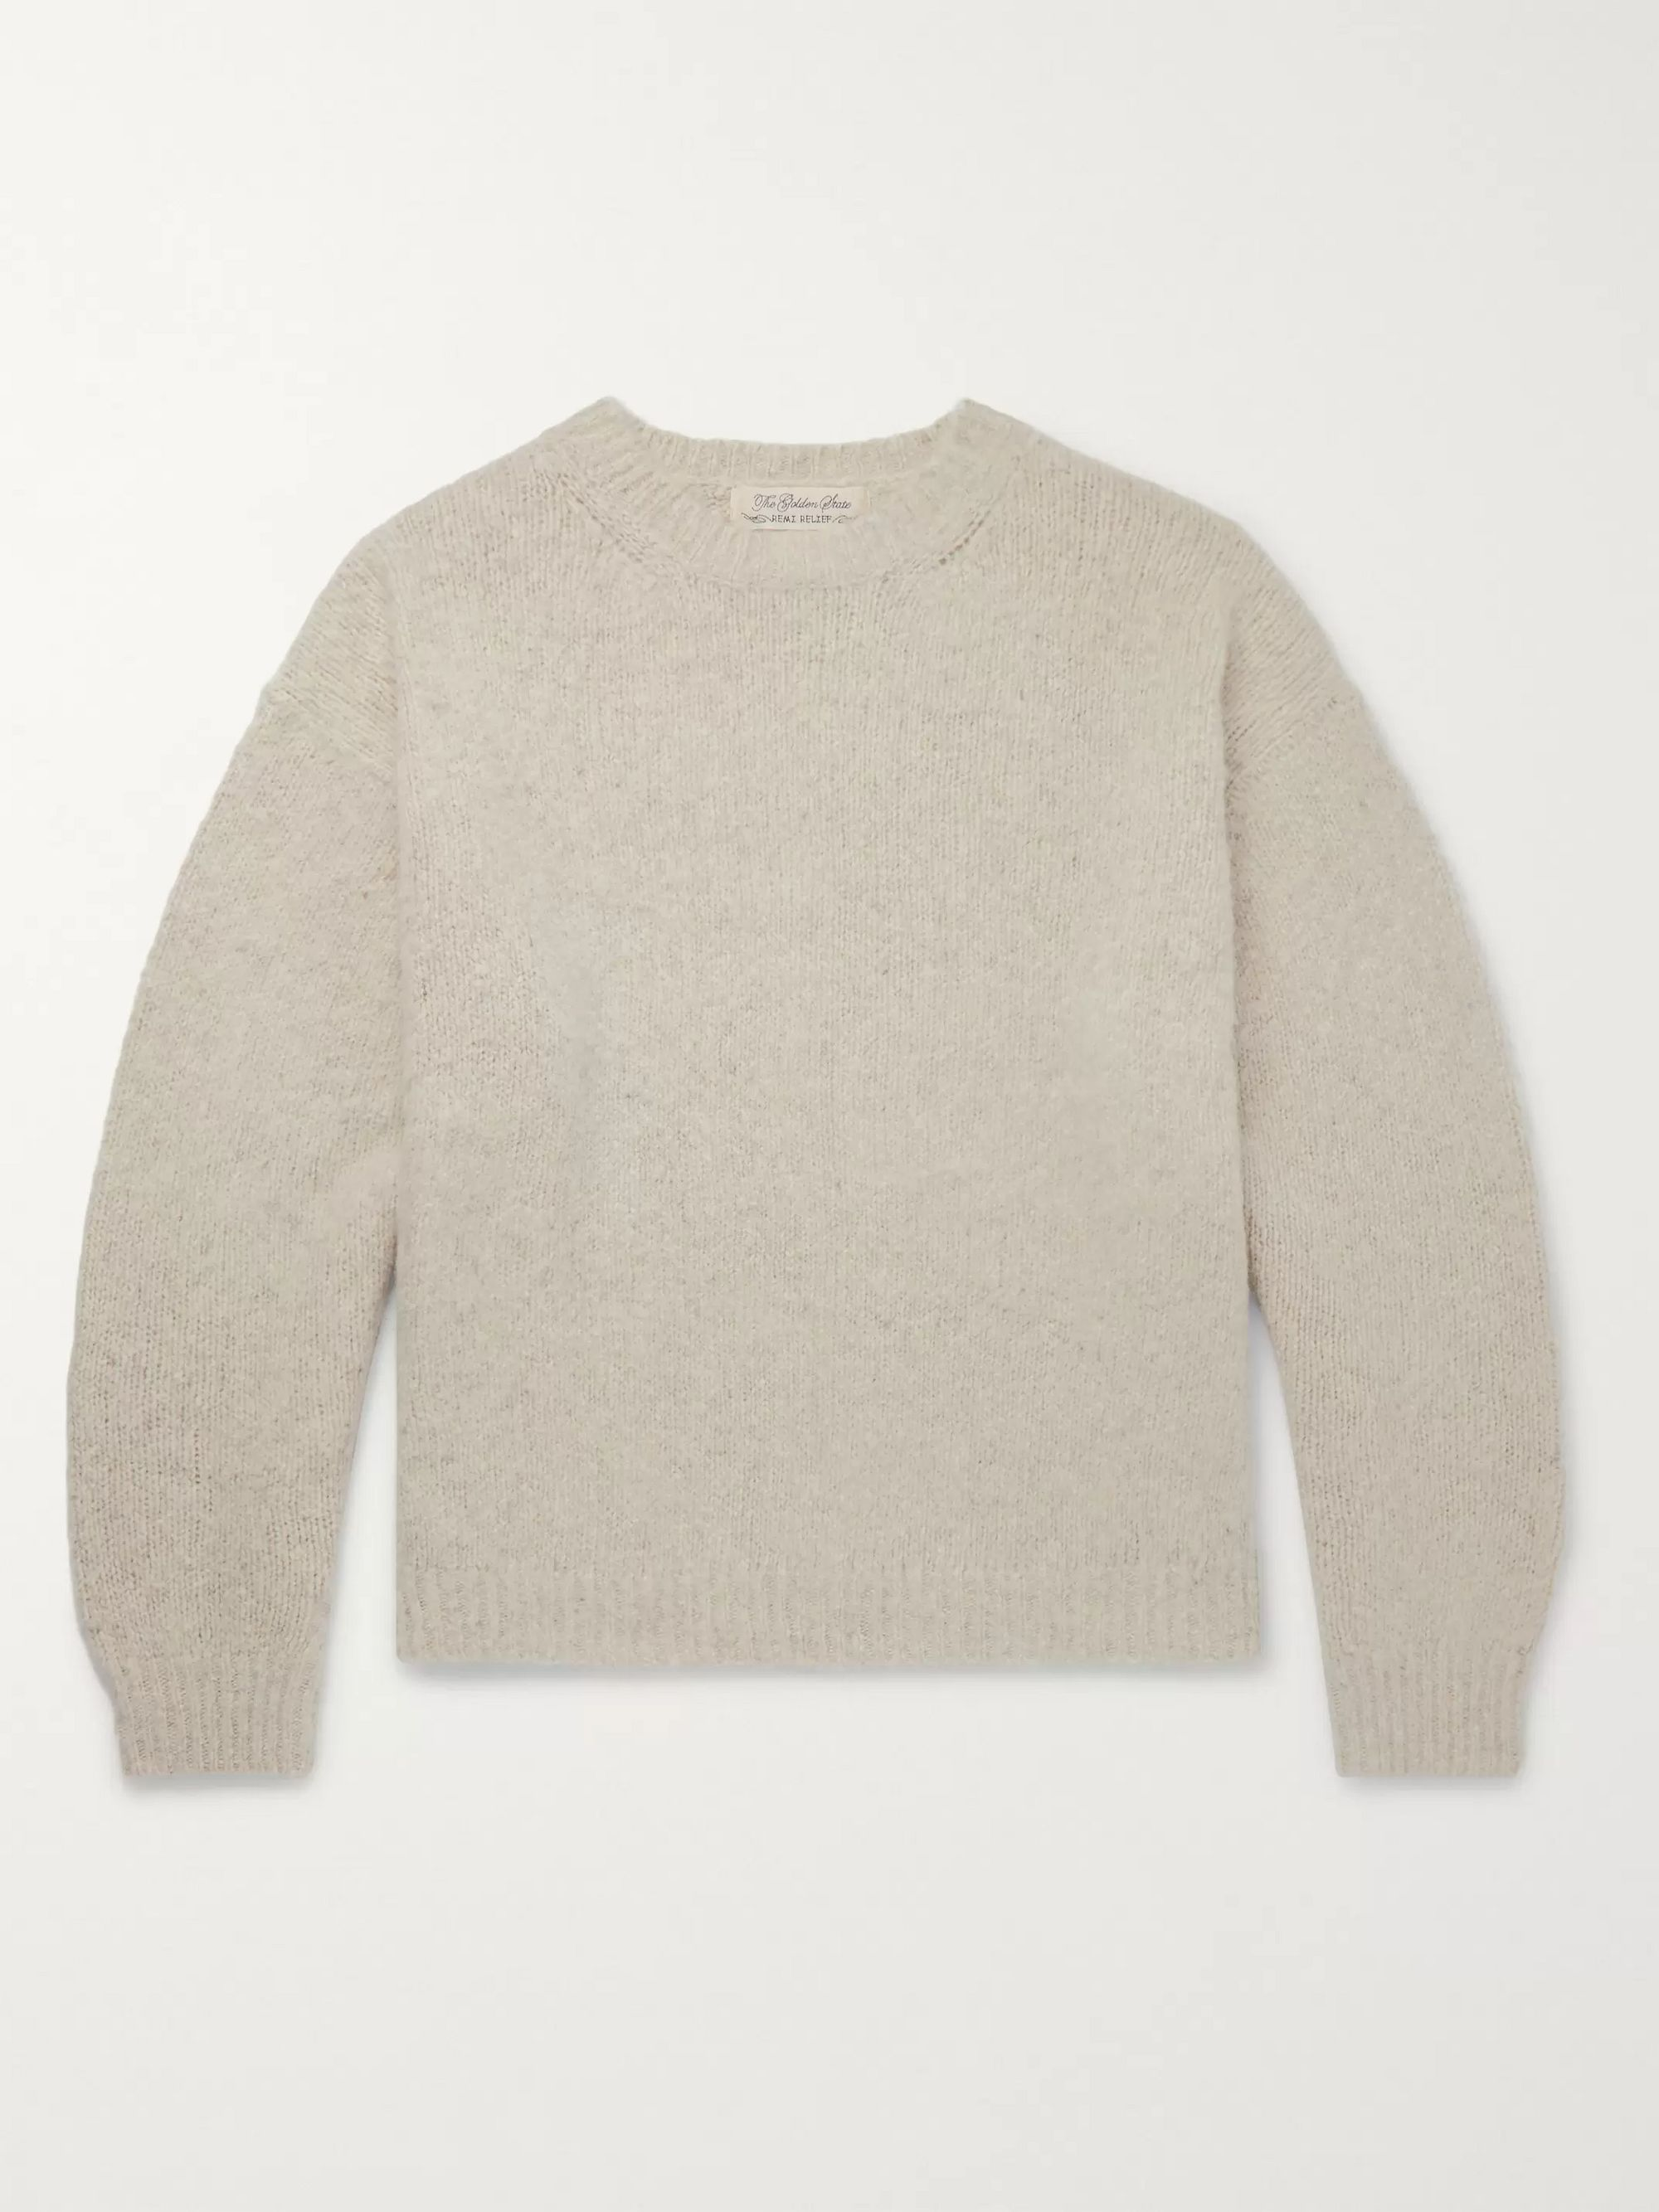 Cashmere Sweater by Remi Relief